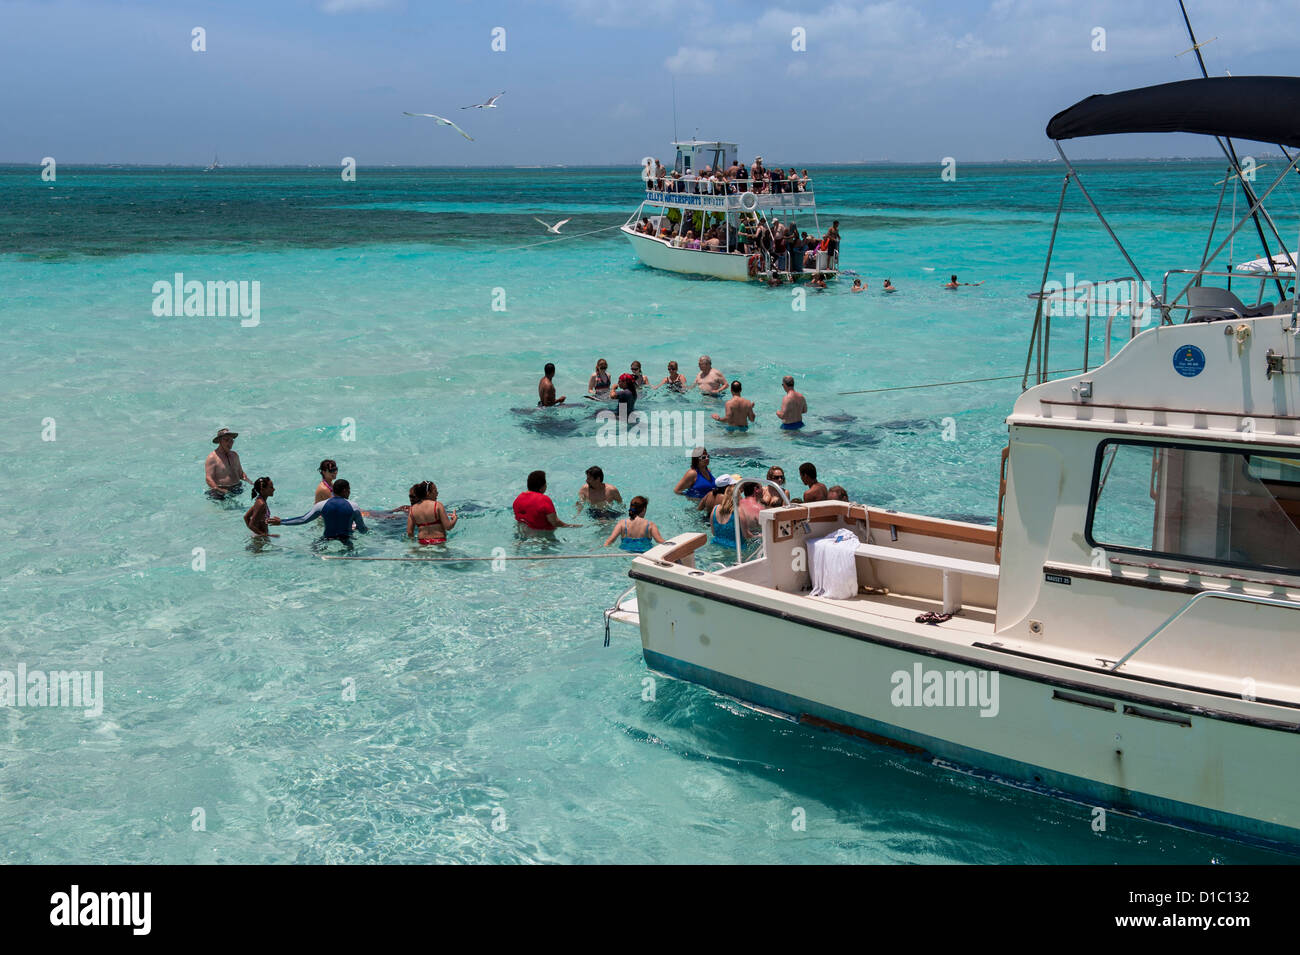 British West Indies, Cayman Islands, Grand Cayman, Stingray City - Stock Image